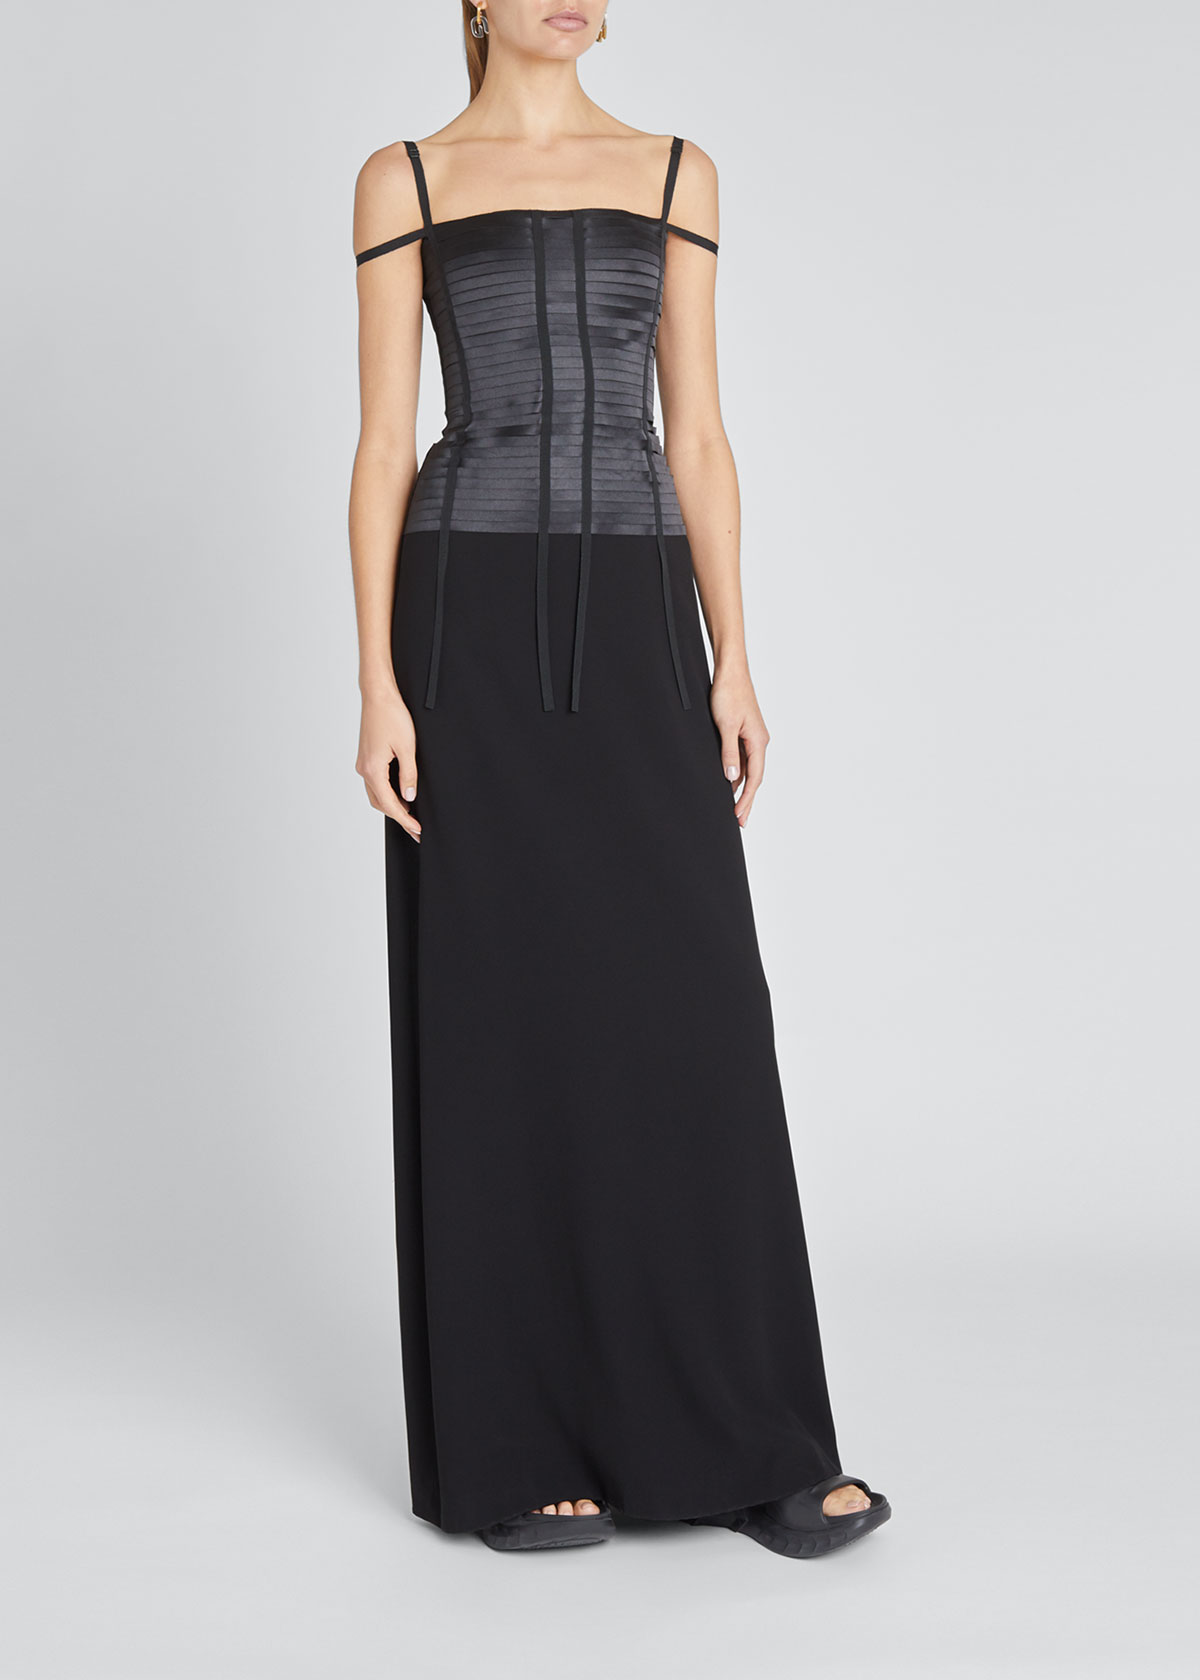 Givenchy Gowns BANDED BUSTIER-TOP GOWN